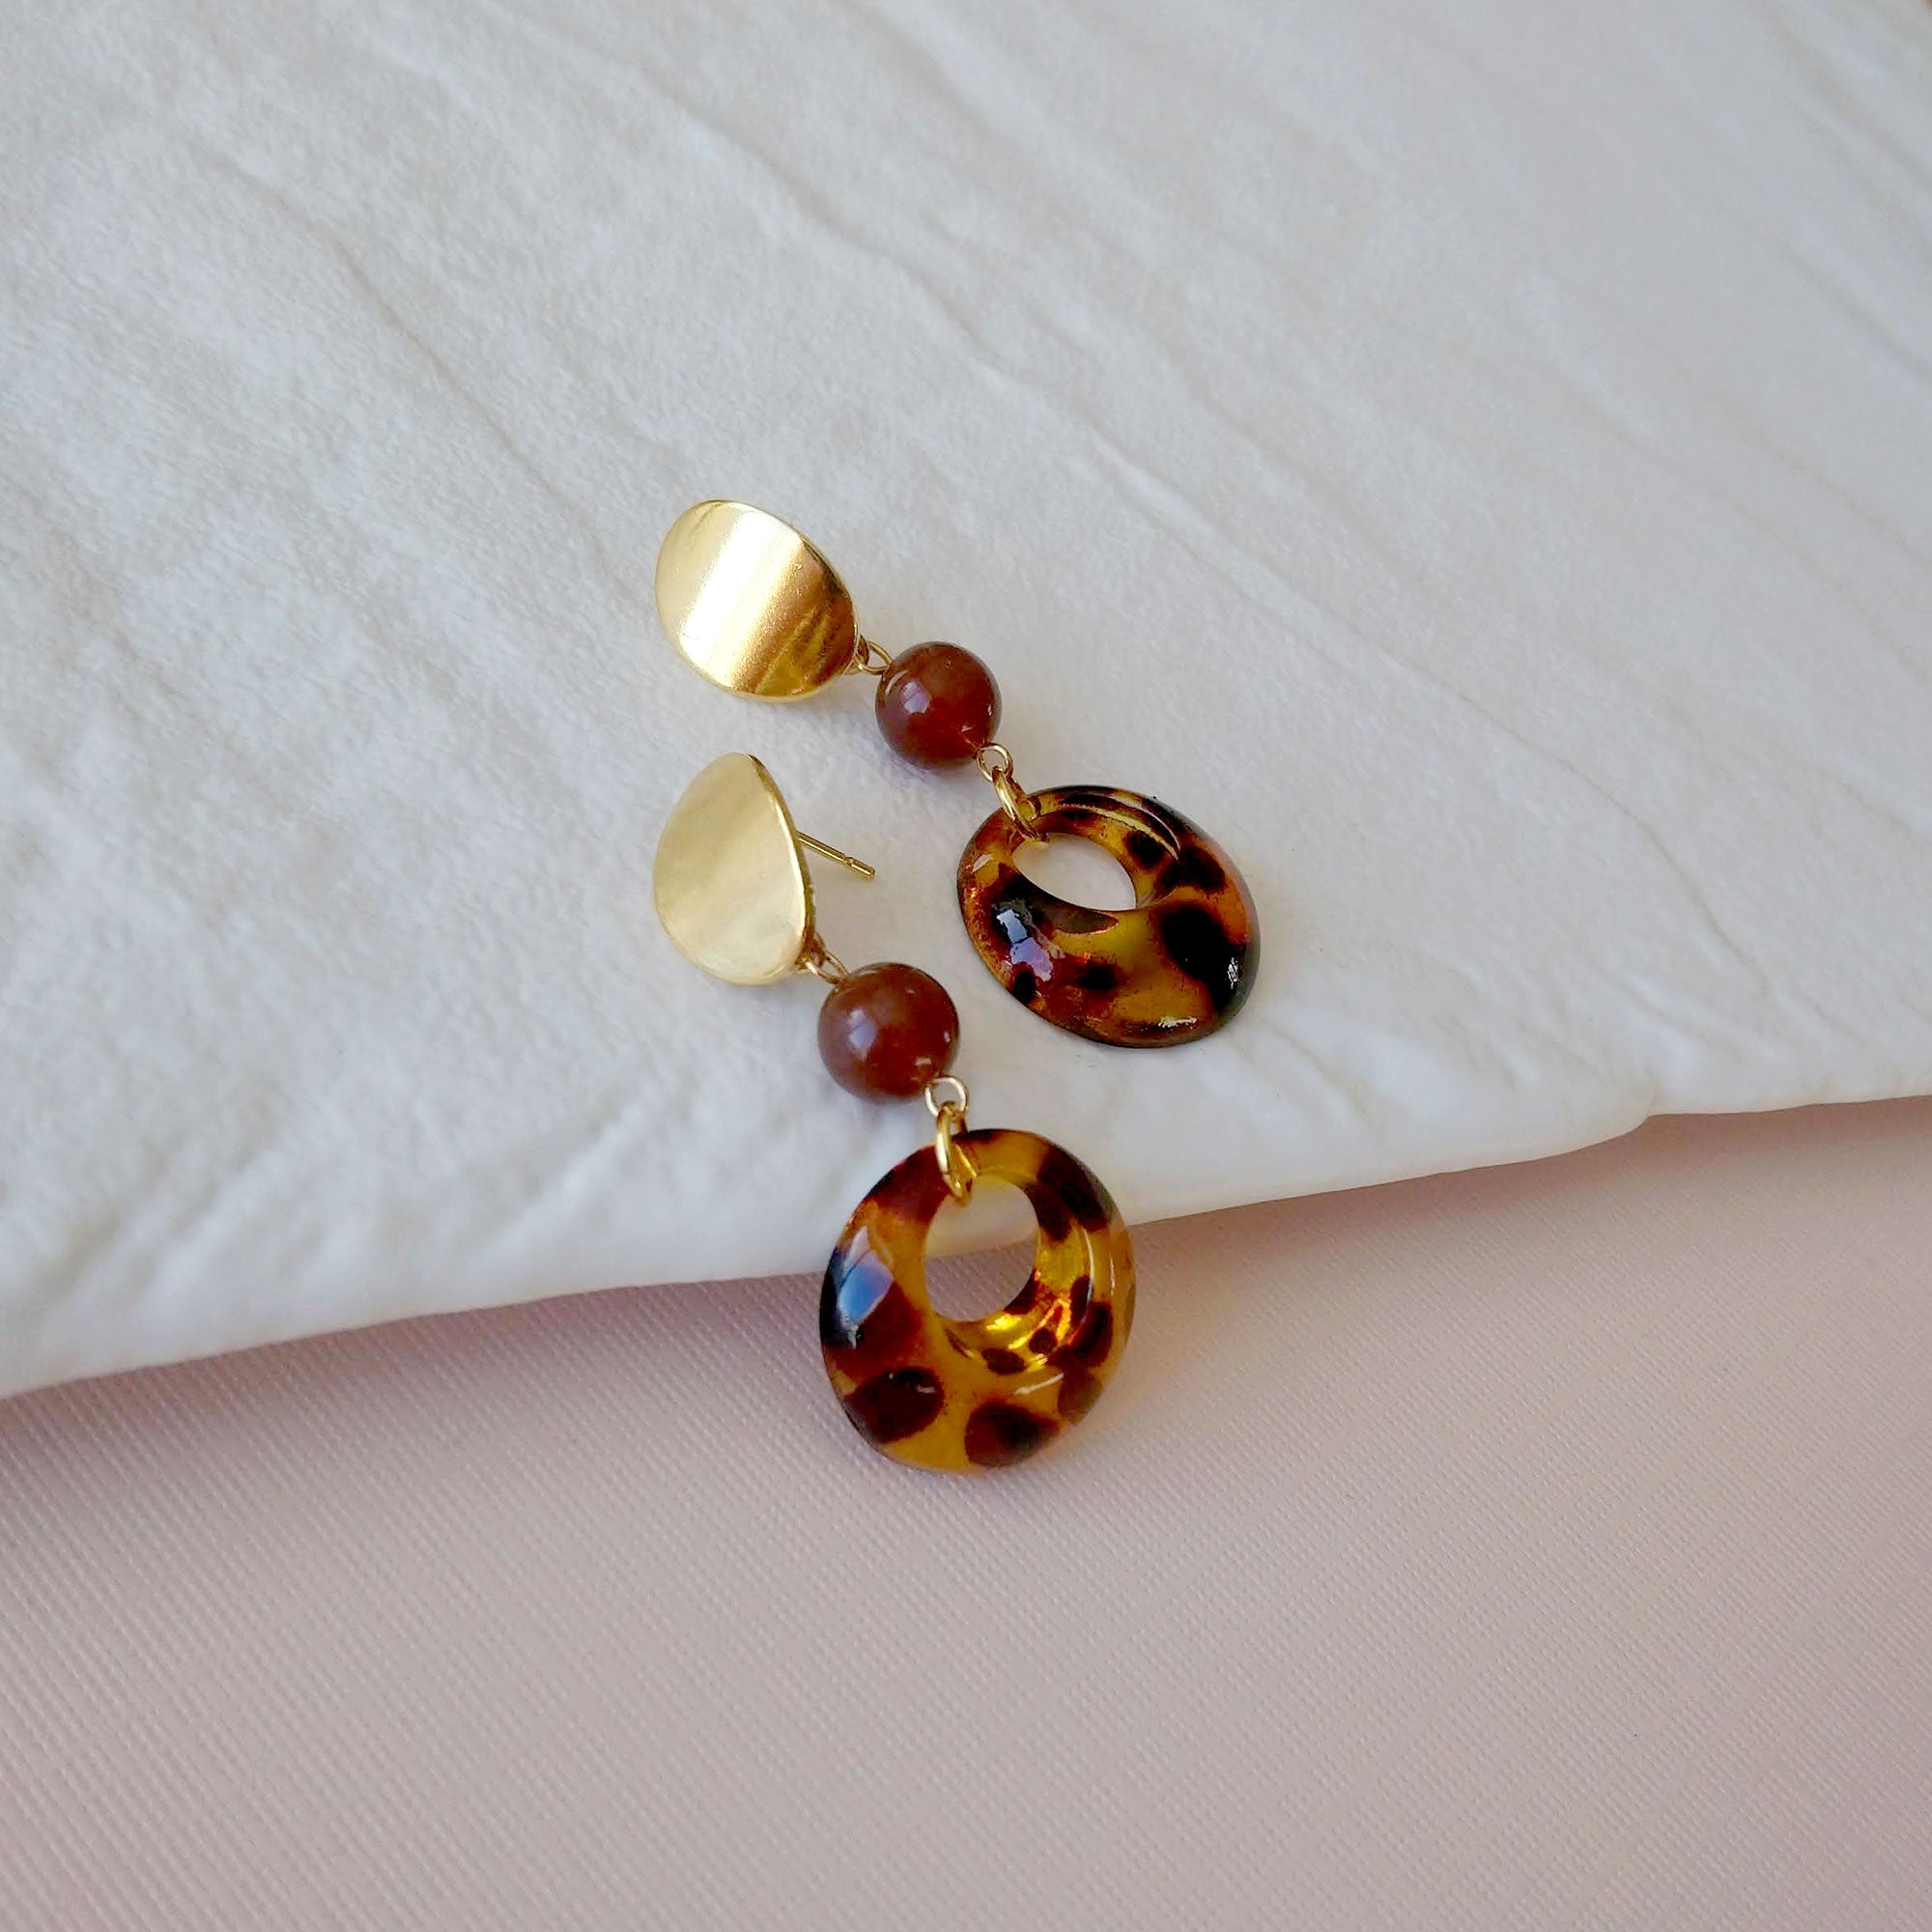 tortoiseshell earrings hypoallergenic amber brown